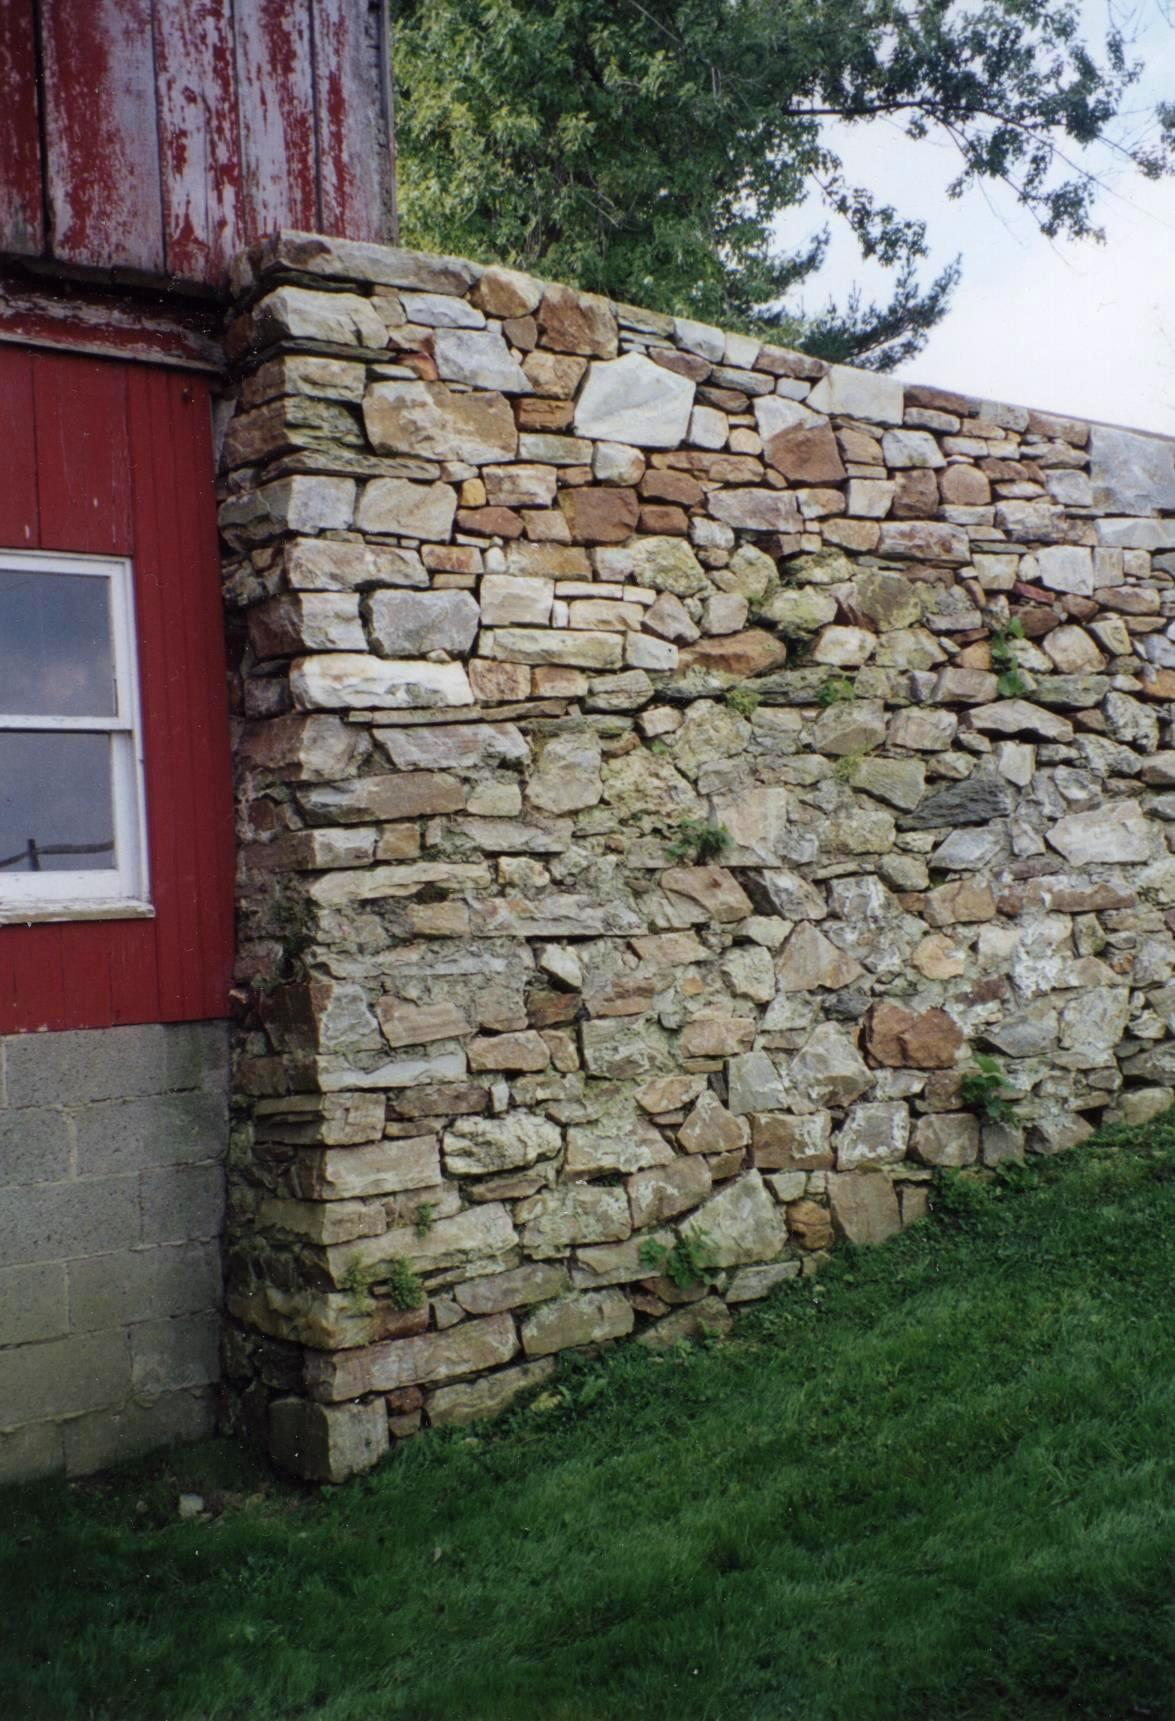 A Natural Stone Wall Attached To An Old Red Barn